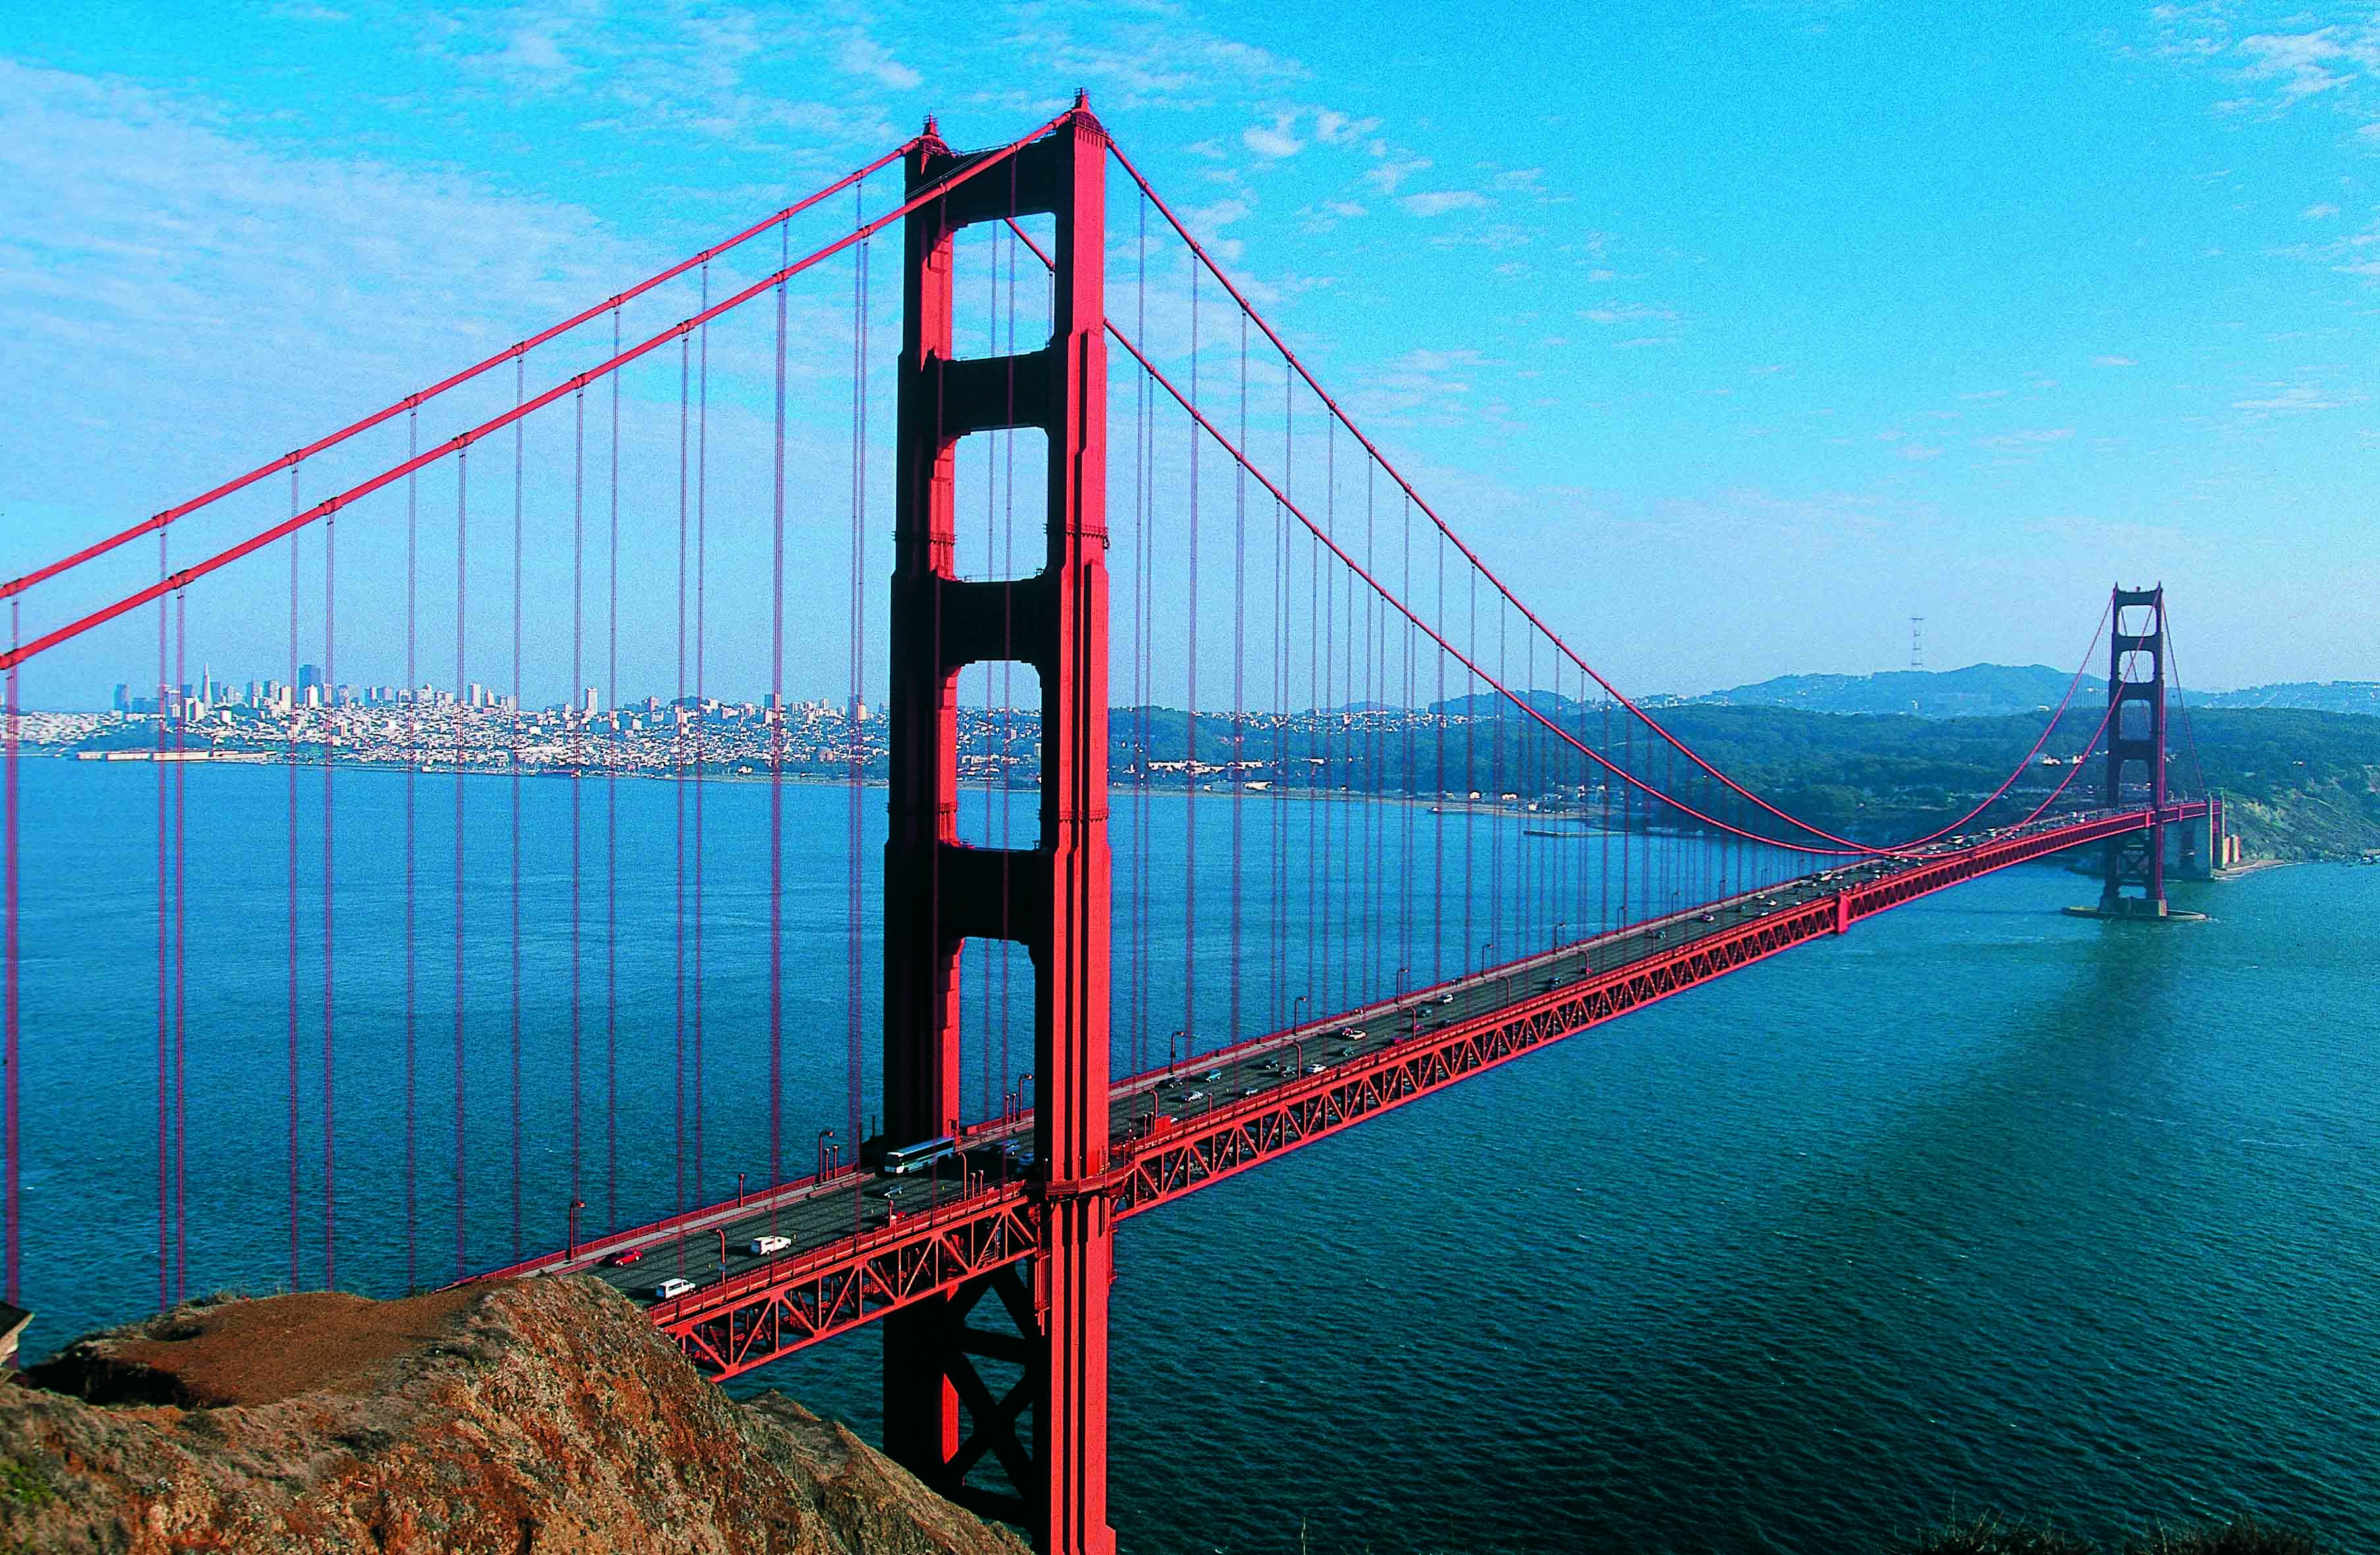 Free Download Golden Gate Bridge Hd Wallpapers Download New Hd